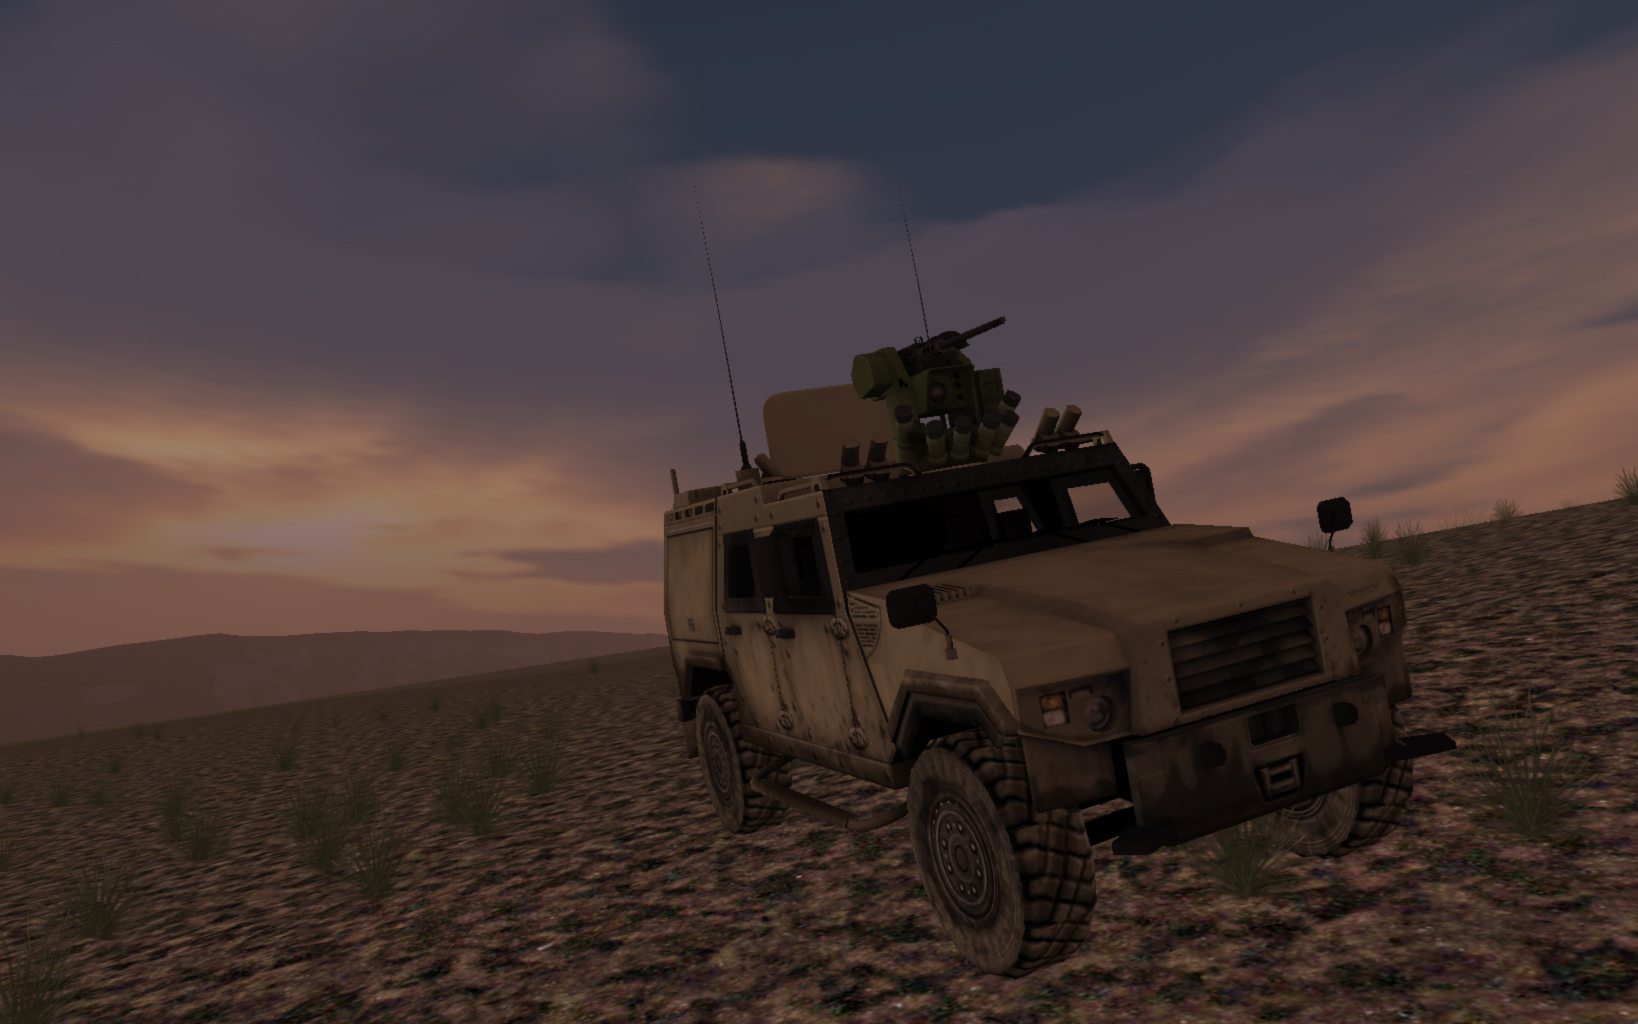 Lemur RWS for the Danish Army